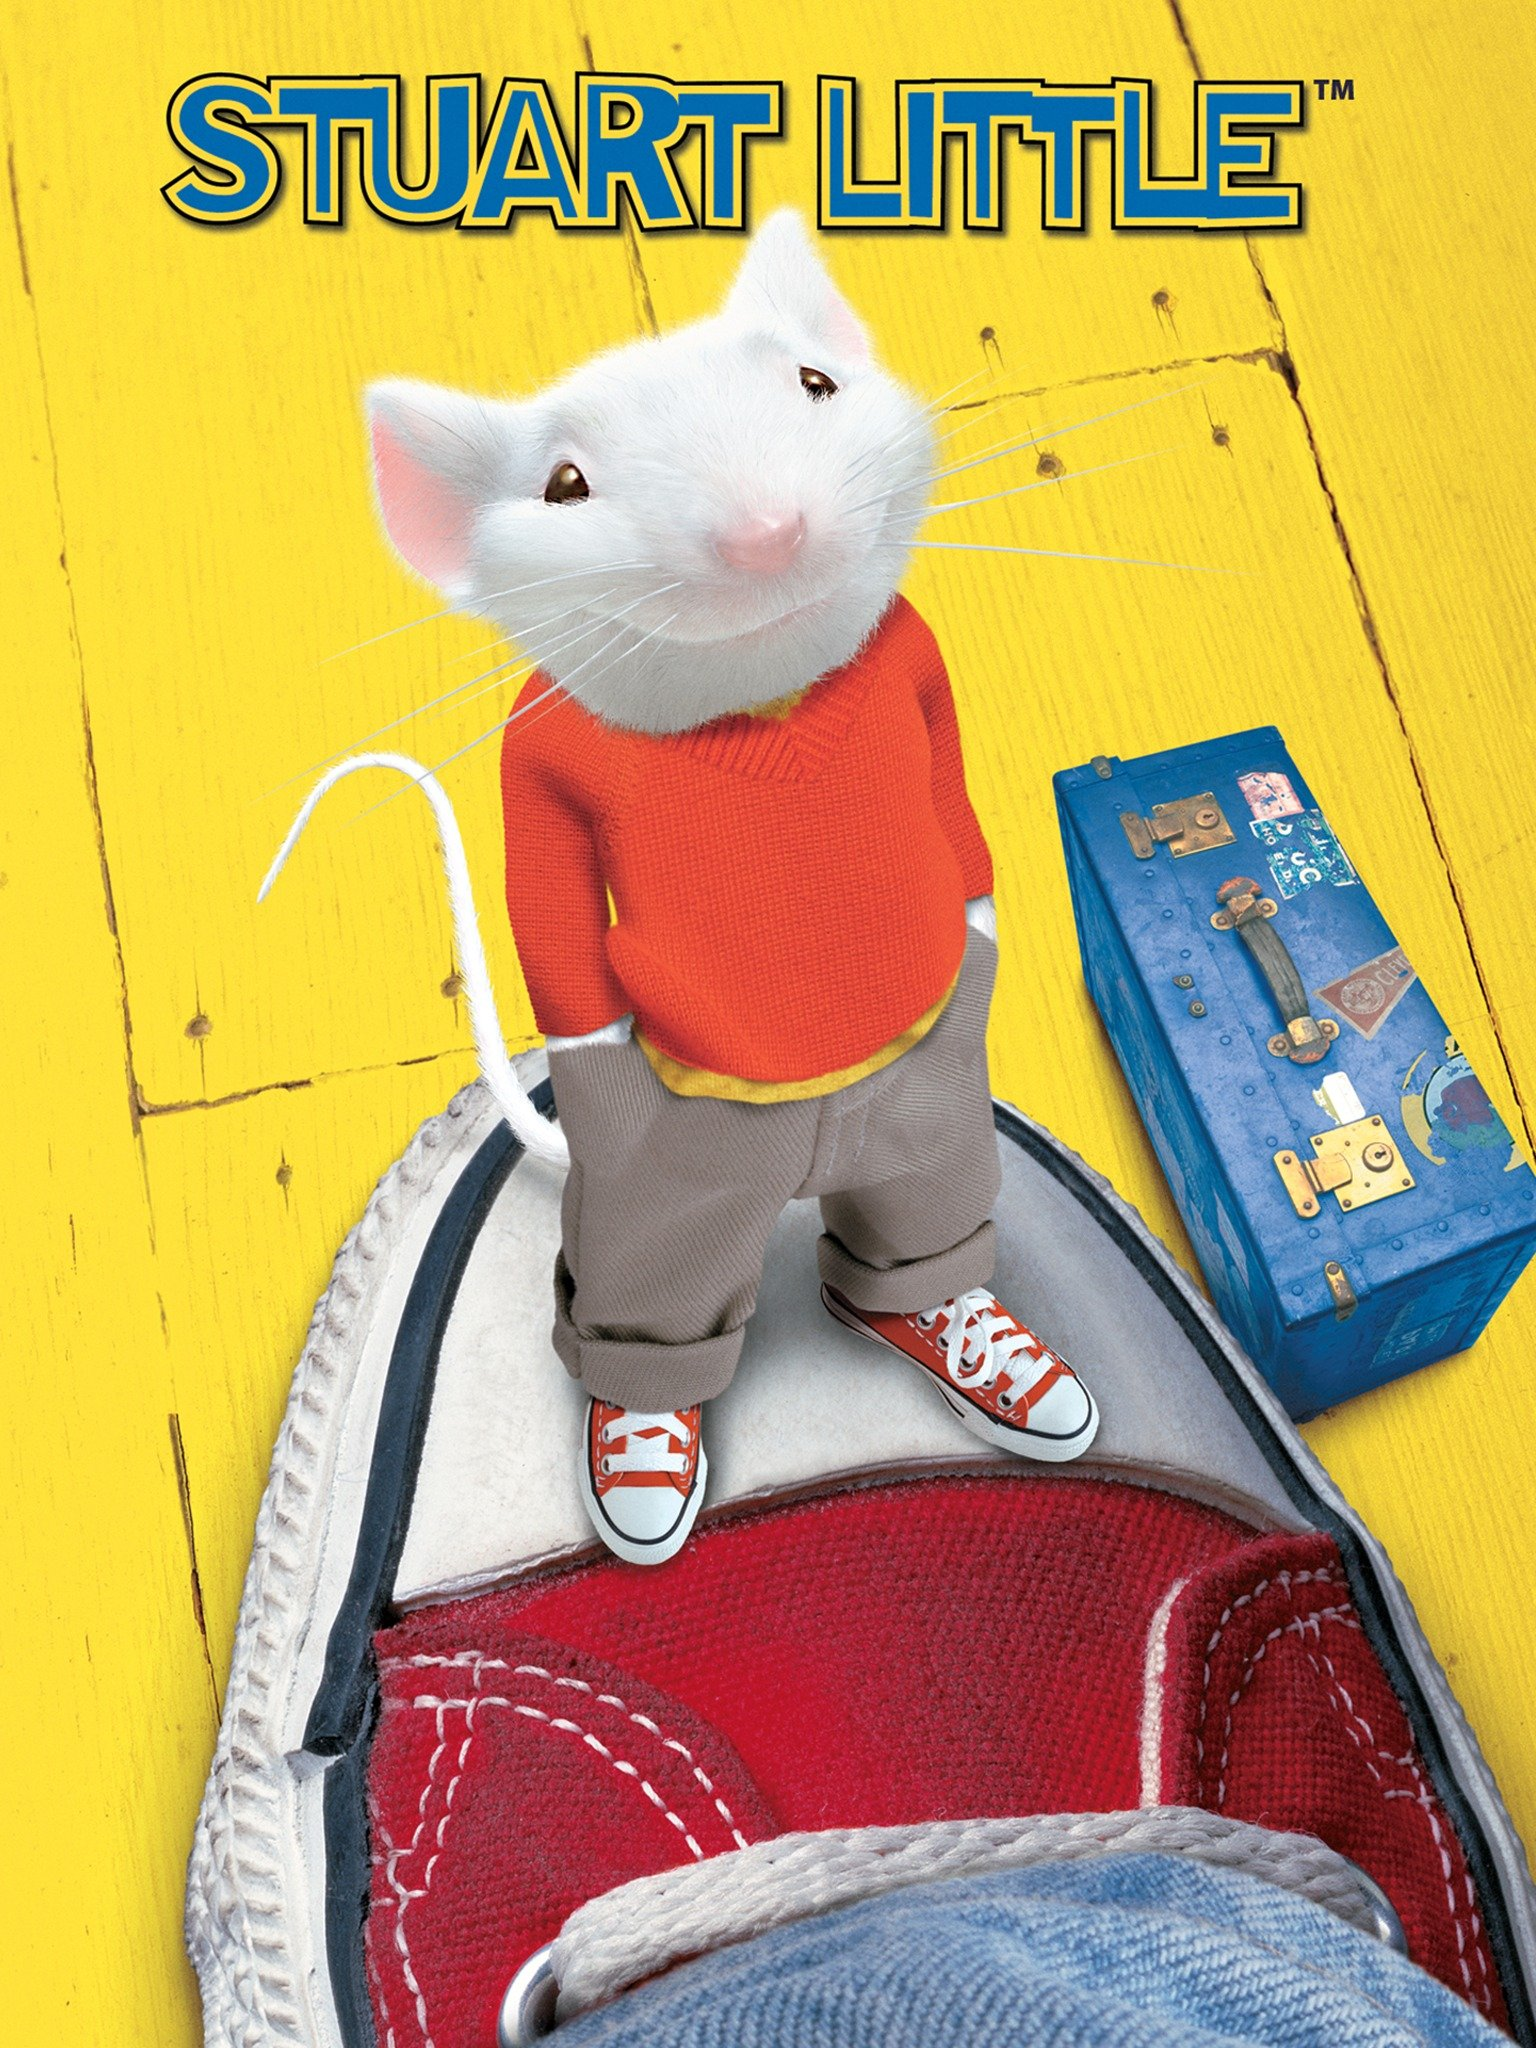 Stuart Little (1999) - Rotten Tomatoes